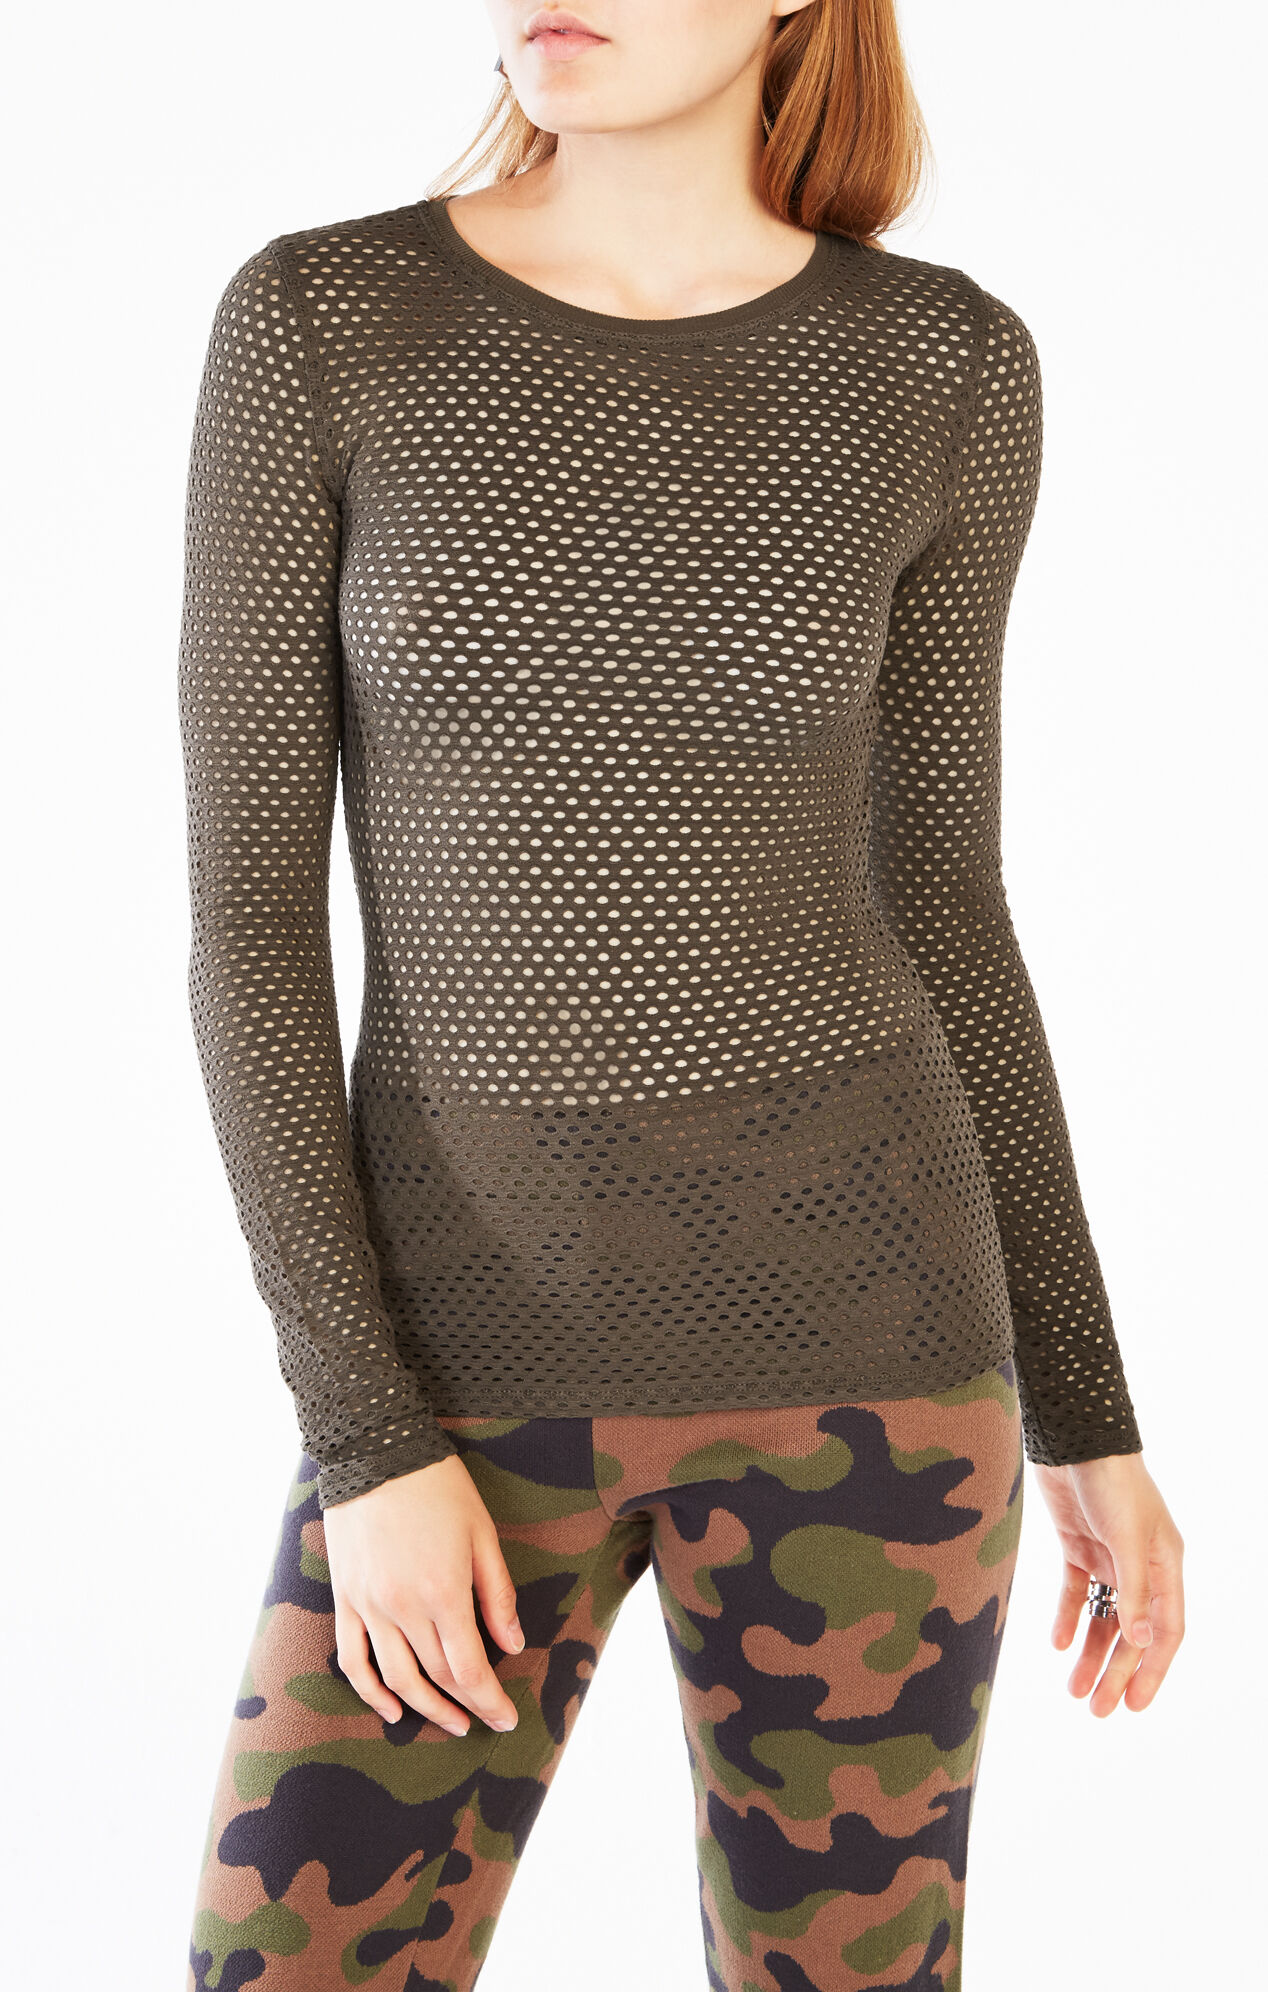 Long Sleeve Tops - REVOLVENew arrivals daily· Free Priority Shipping· + designer brands· Live chat customer care.